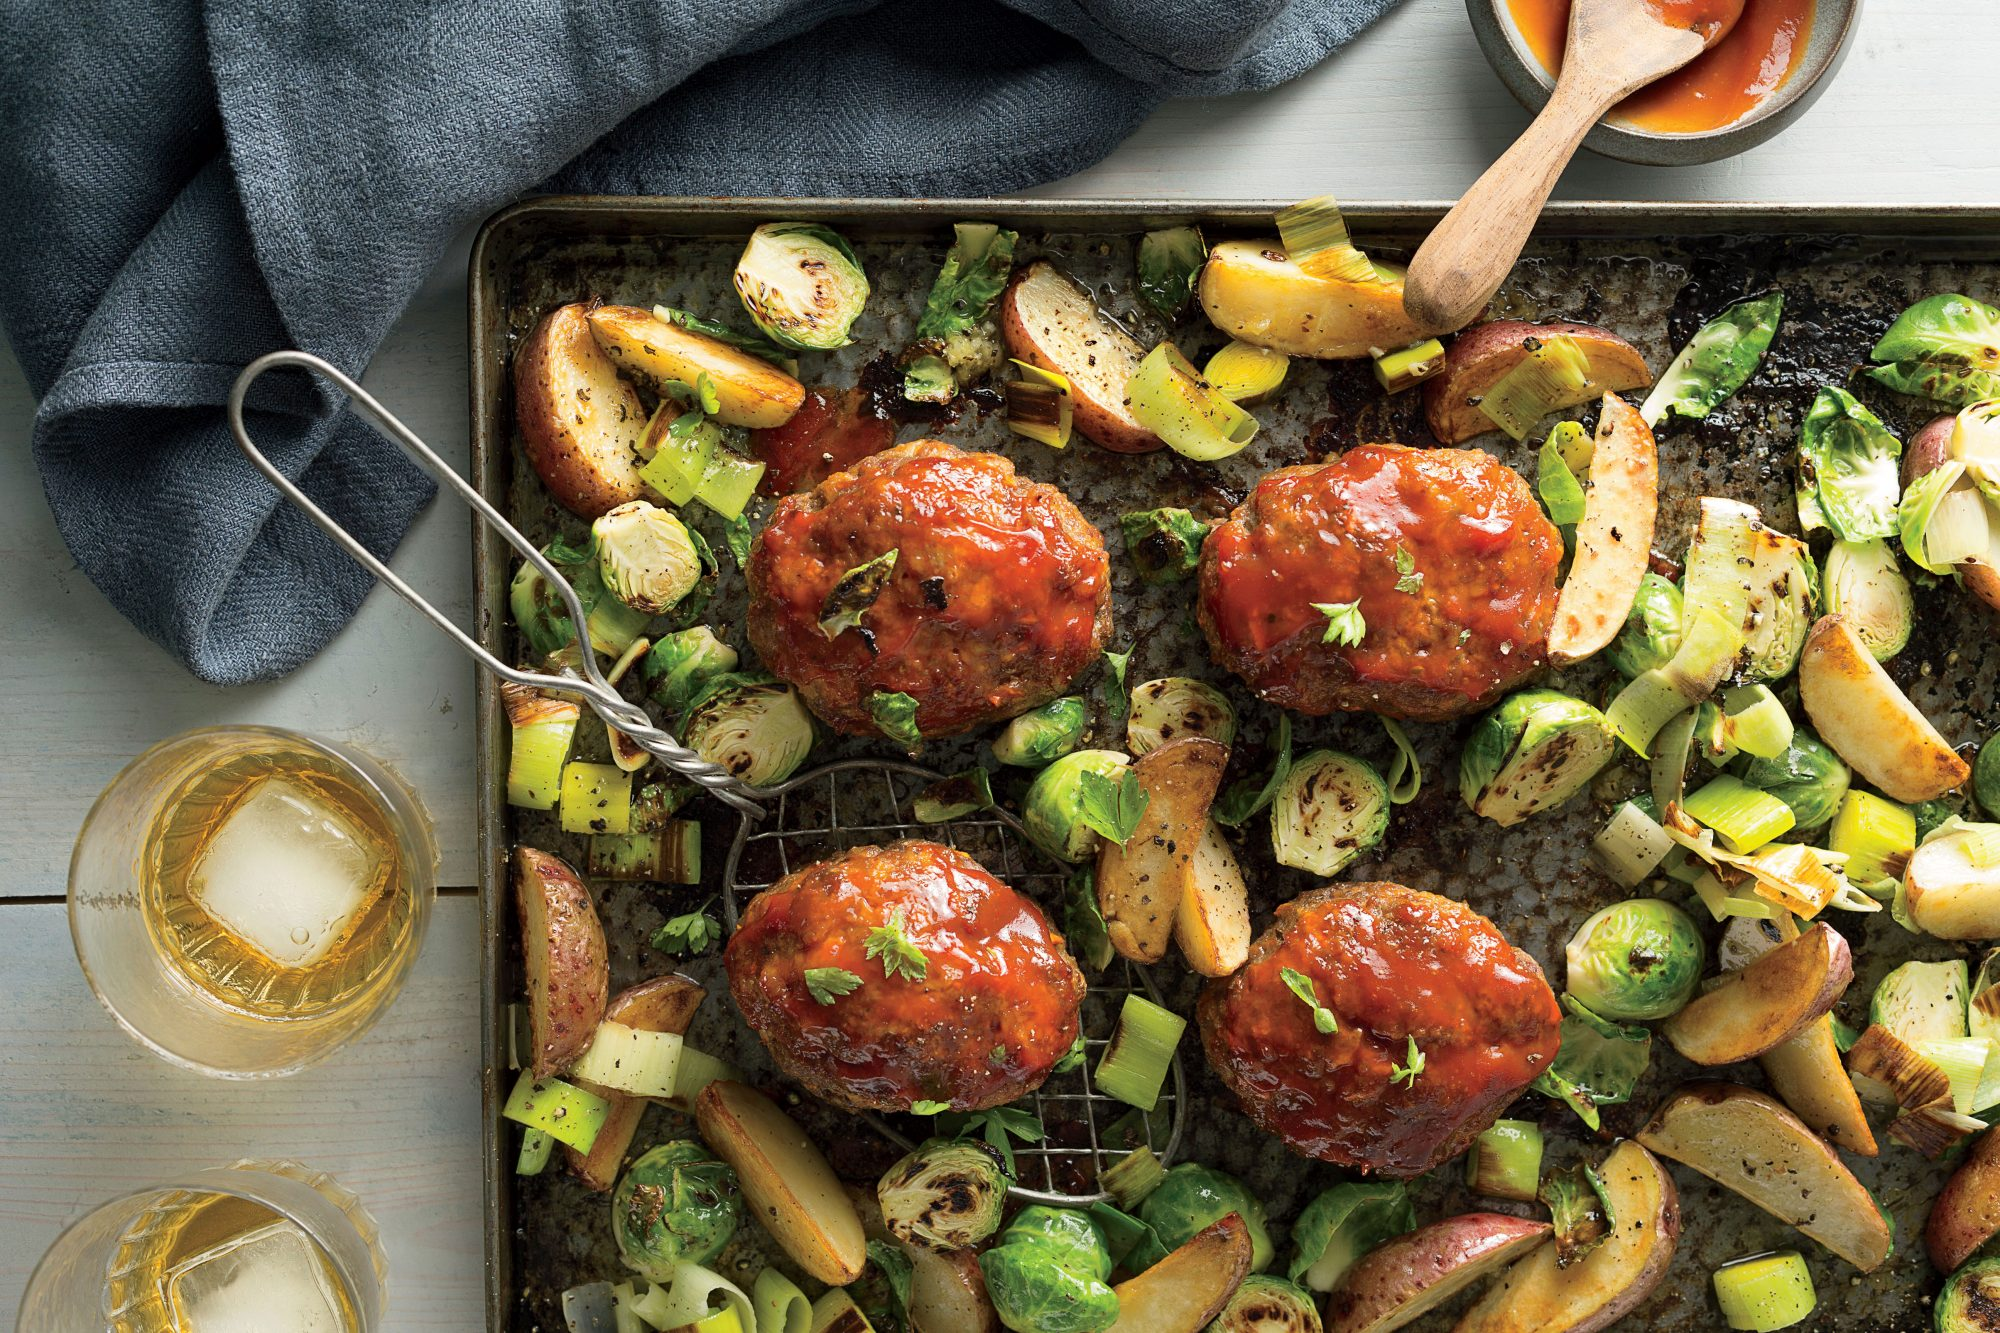 Mini Meatloaves with Potatoes, Leeks, and Brussels Sprouts